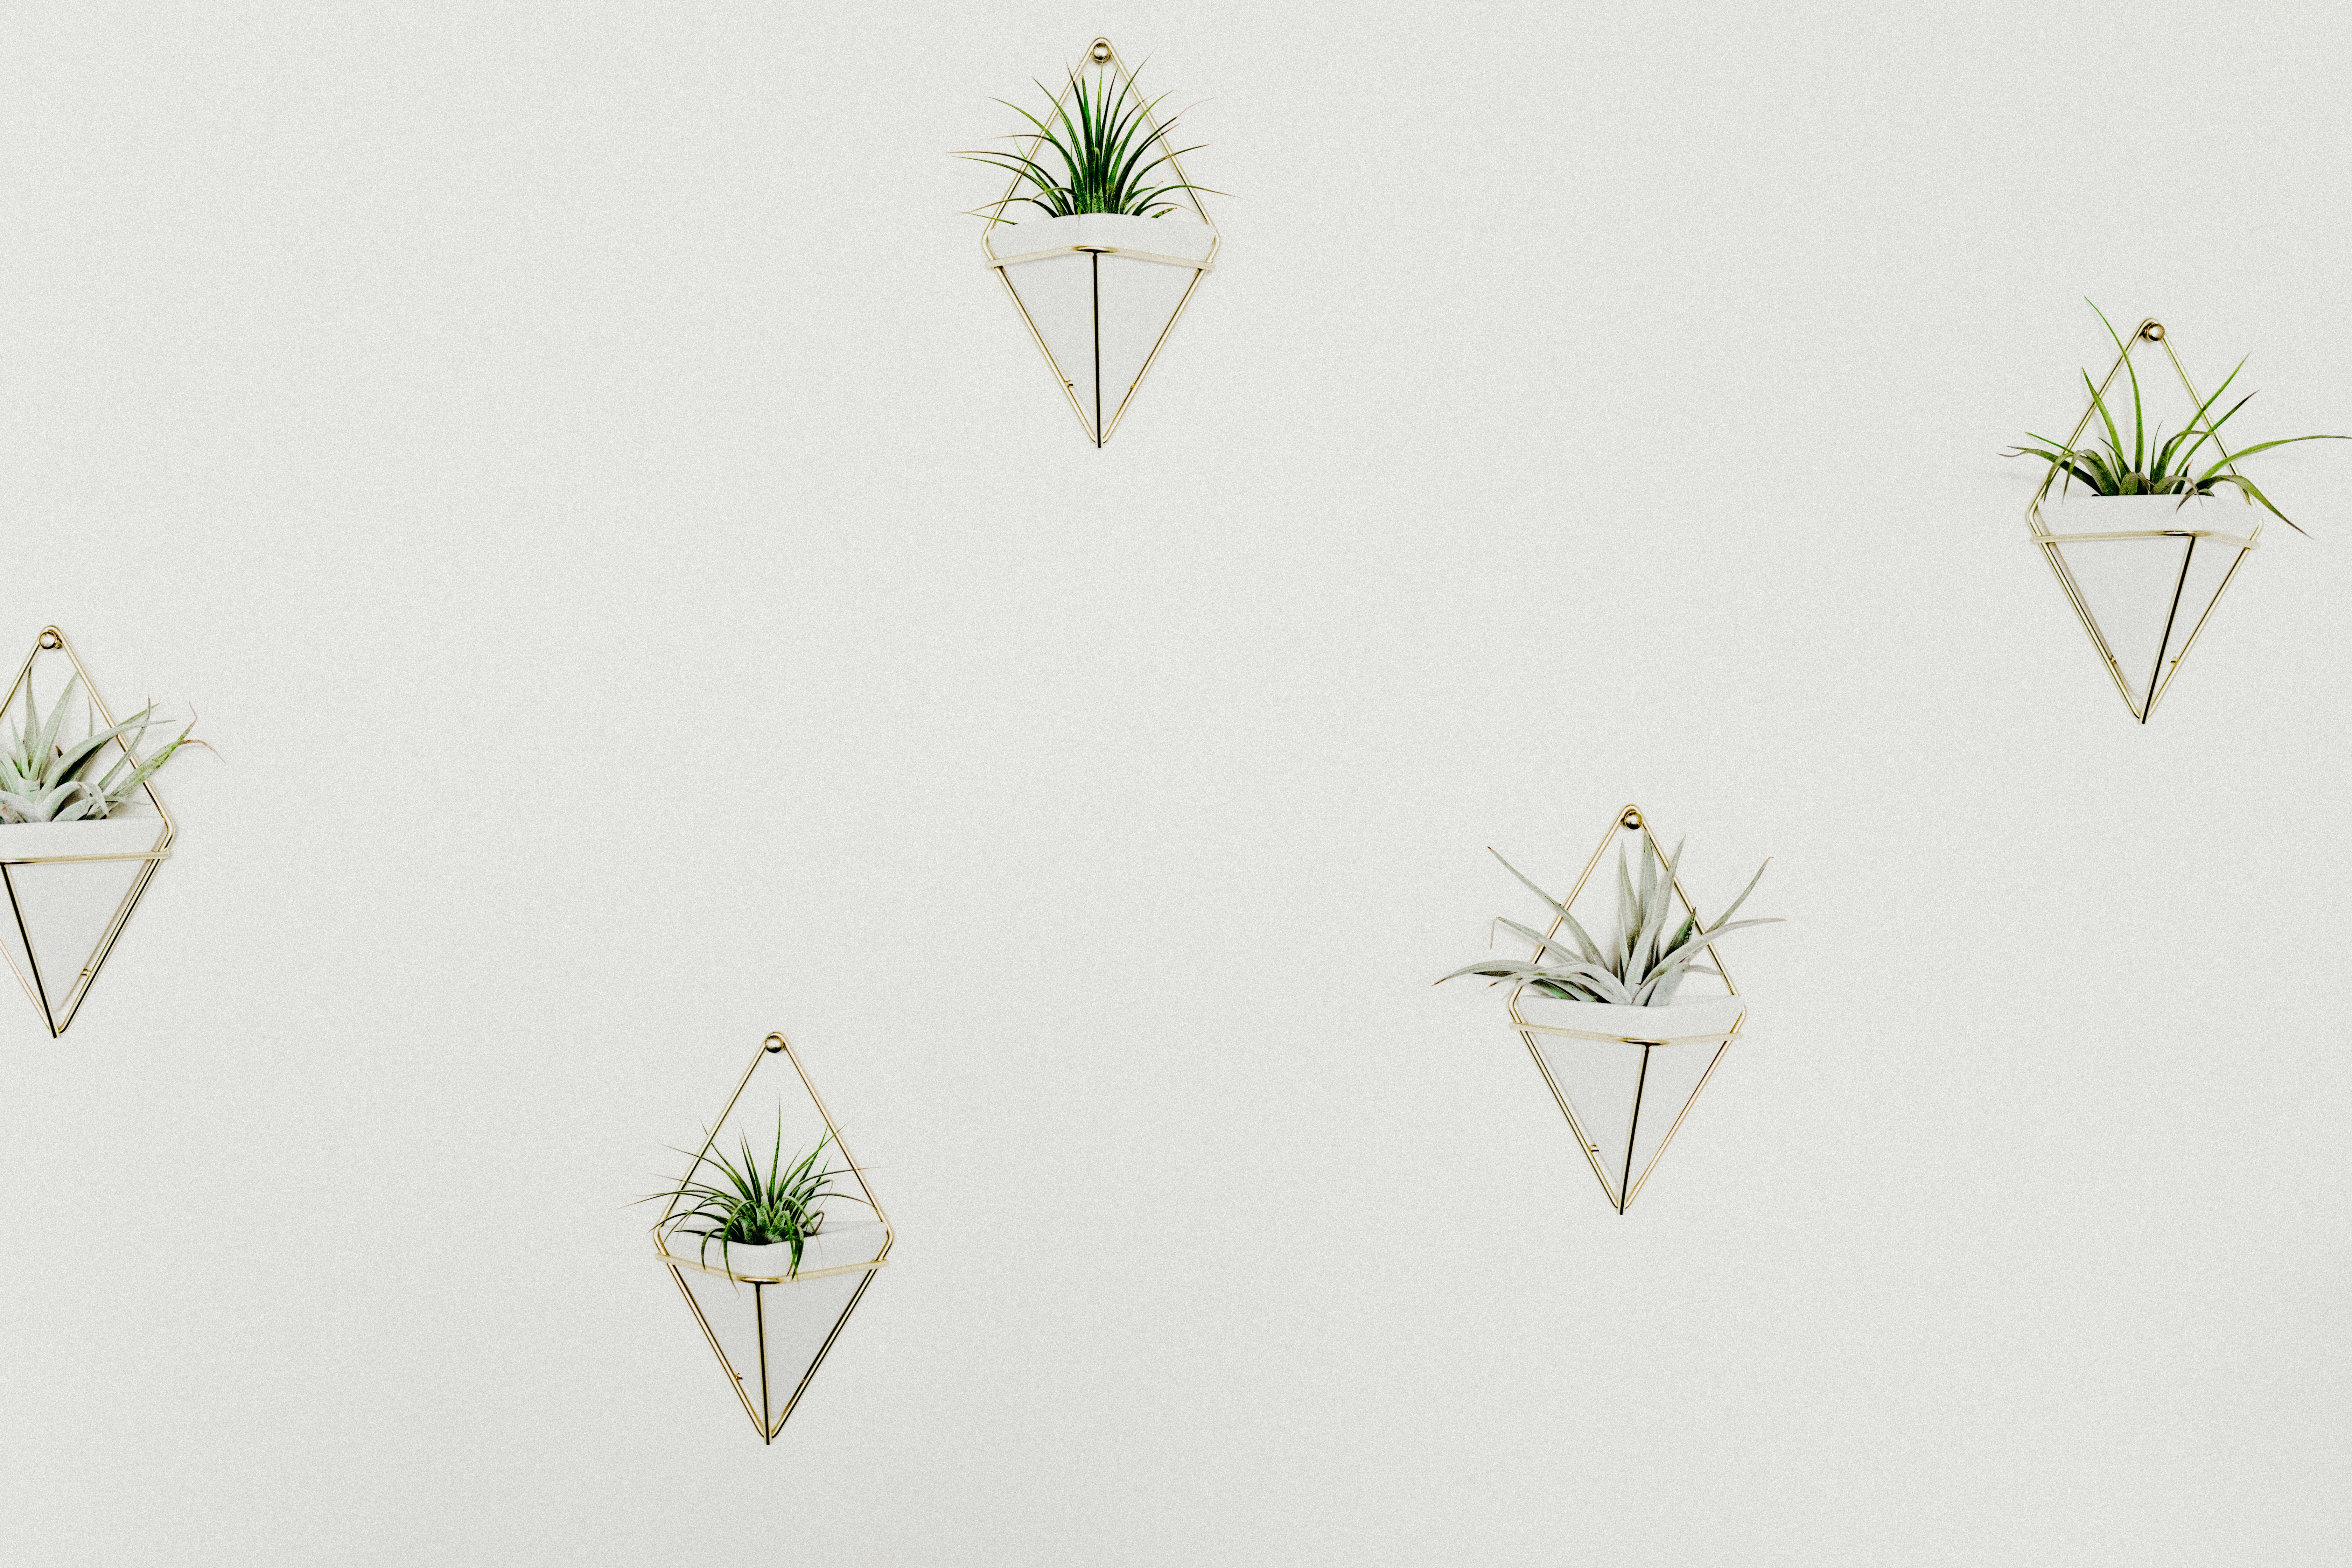 Geometric planters with house plants hang on a white wall